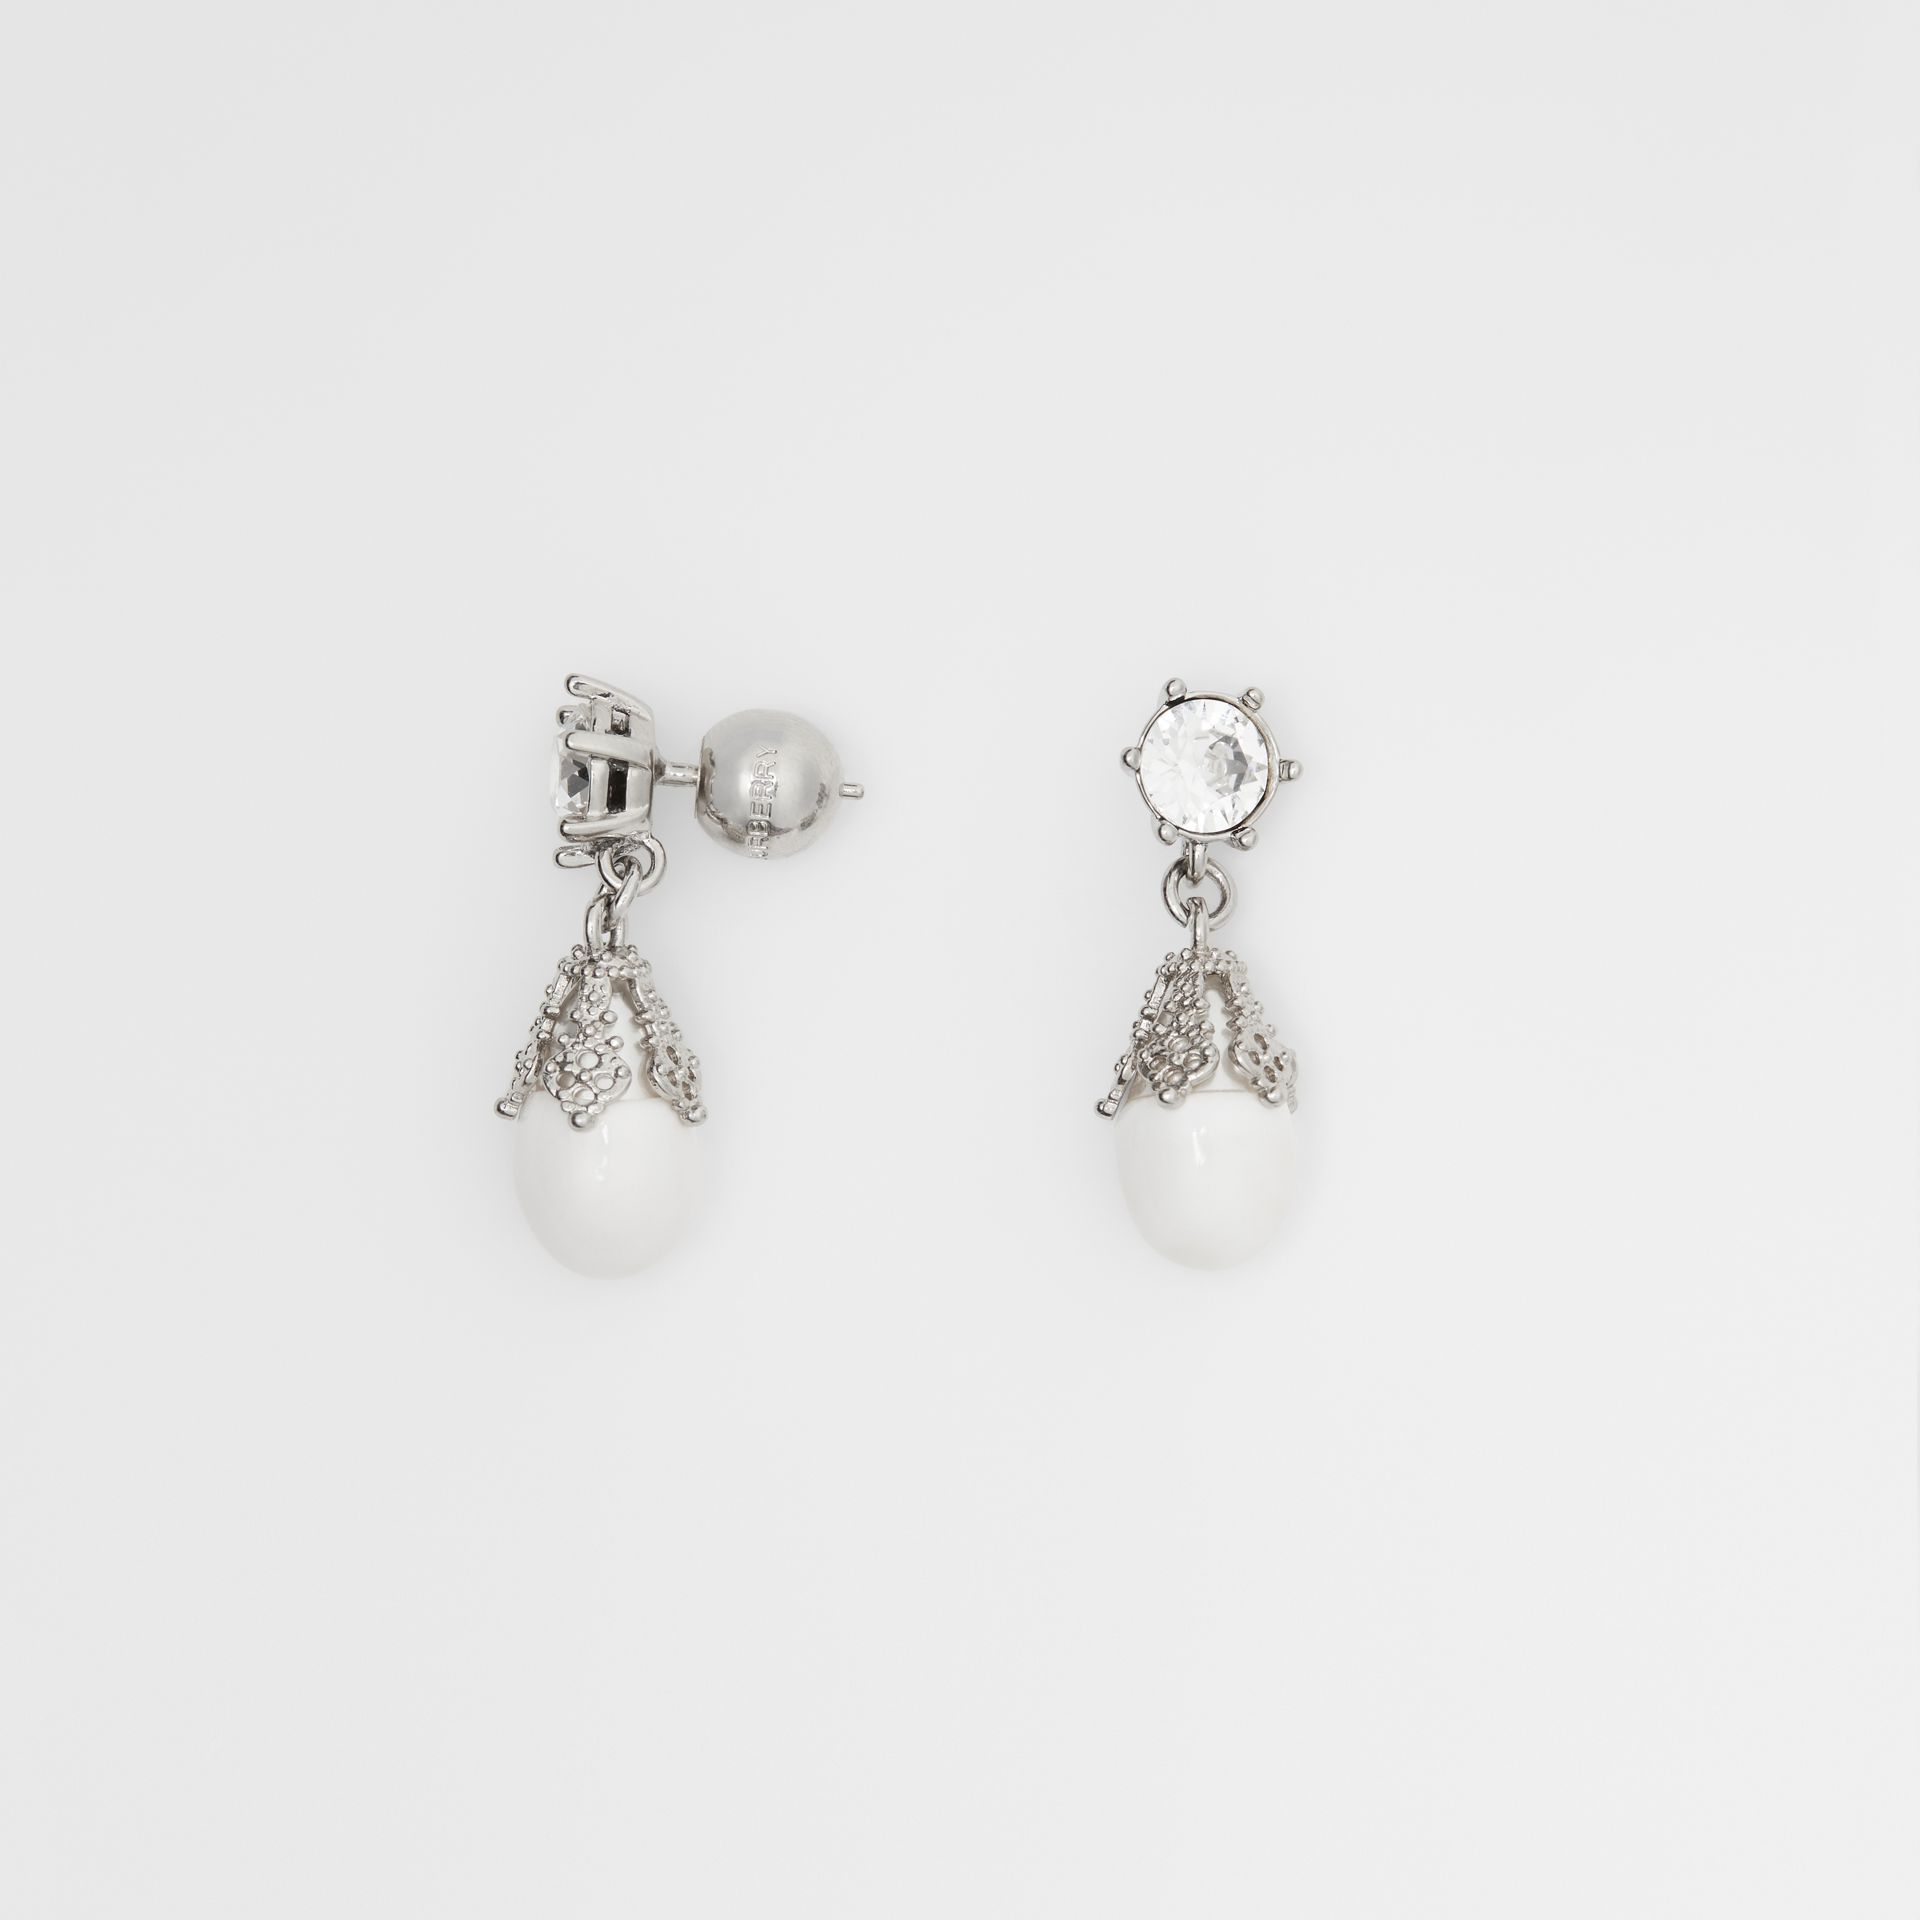 Palladium-plated Faux Pearl Charm Earrings in White/palladium - Women | Burberry Canada - gallery image 3